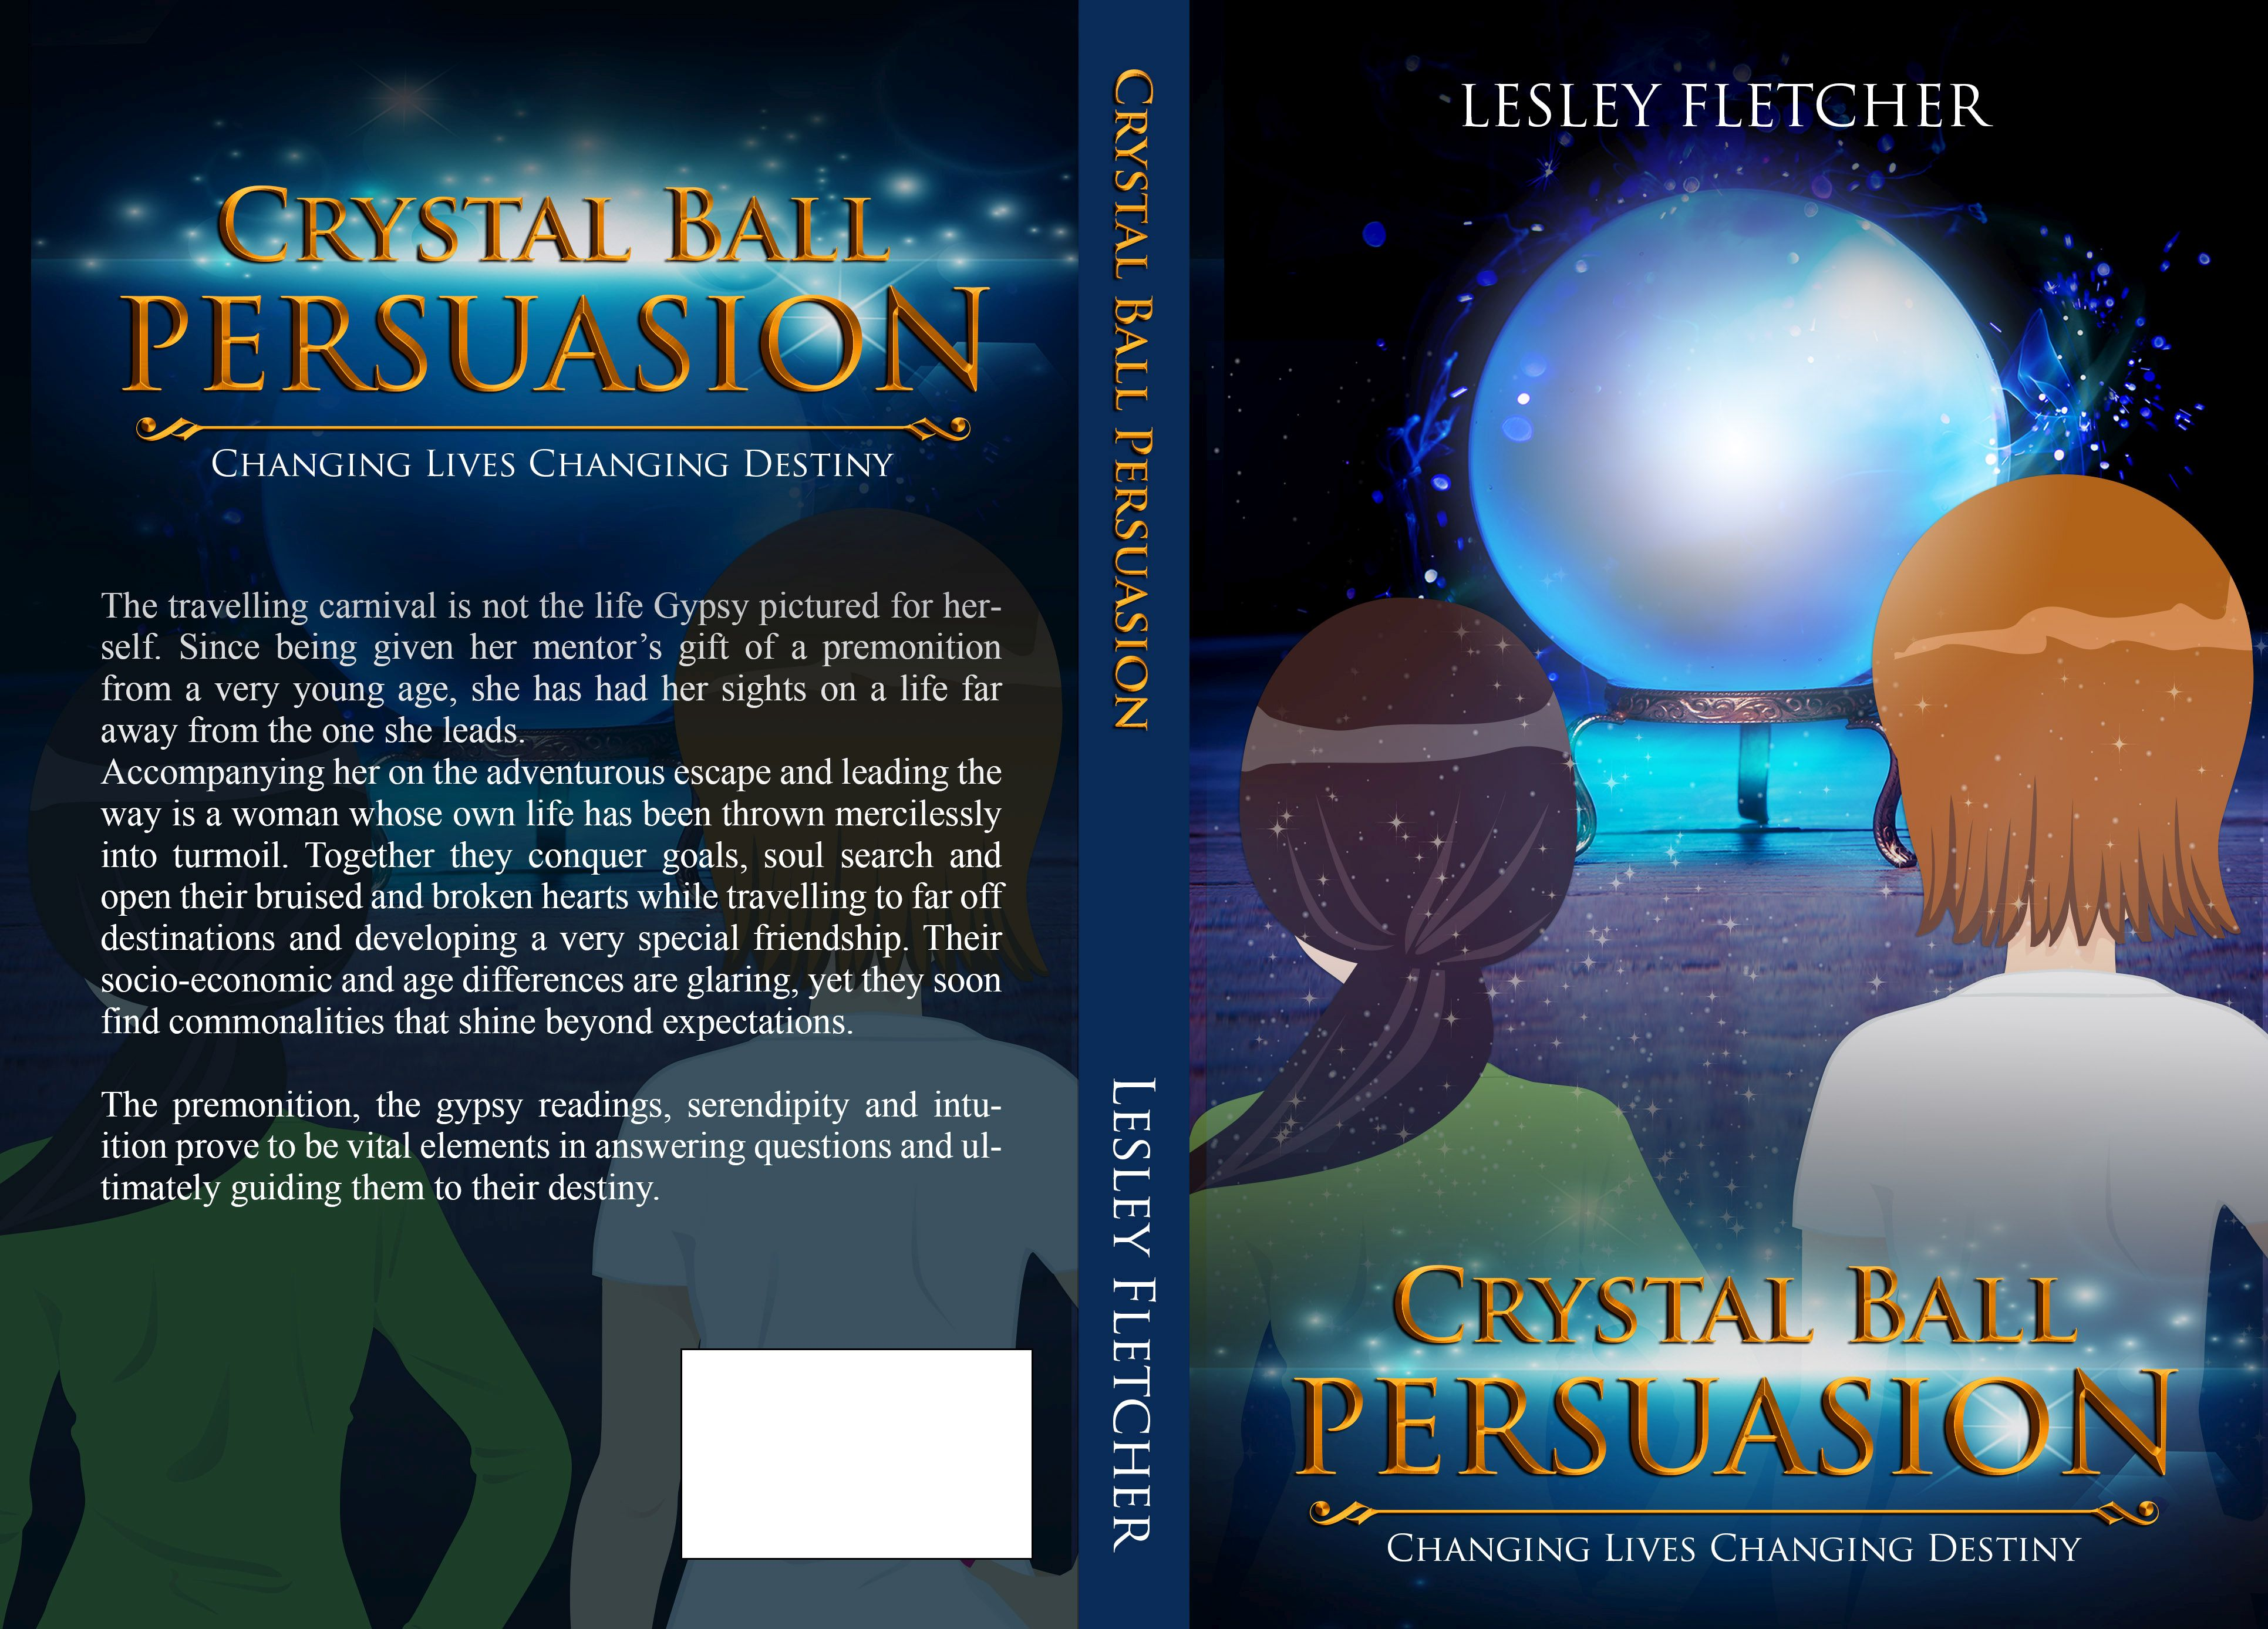 A Glimpse at Crystal Ball Persuasion